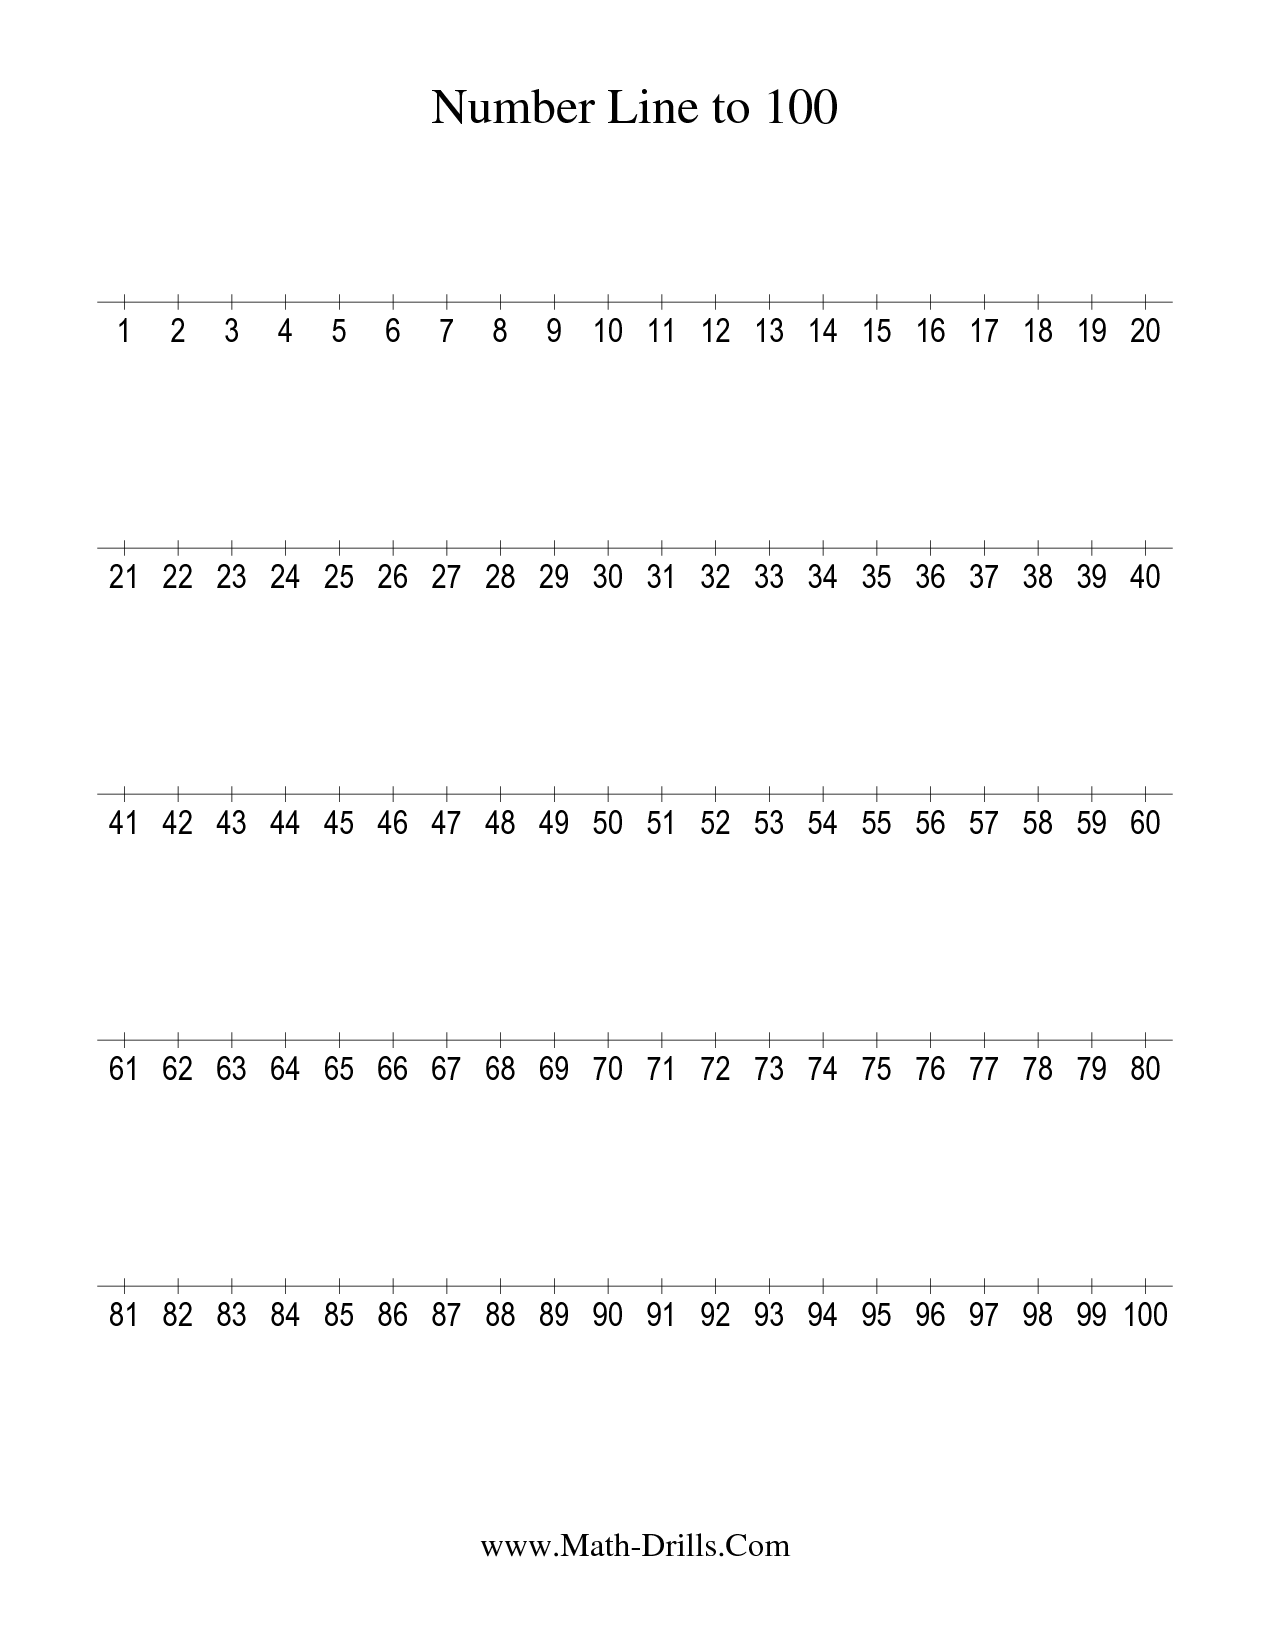 Number Line 1 100 Could Laminate And Use For Guess My Number Or For Adding And Subtracting 2 Digit Numbers Number Line Printable Number Line Math Drills